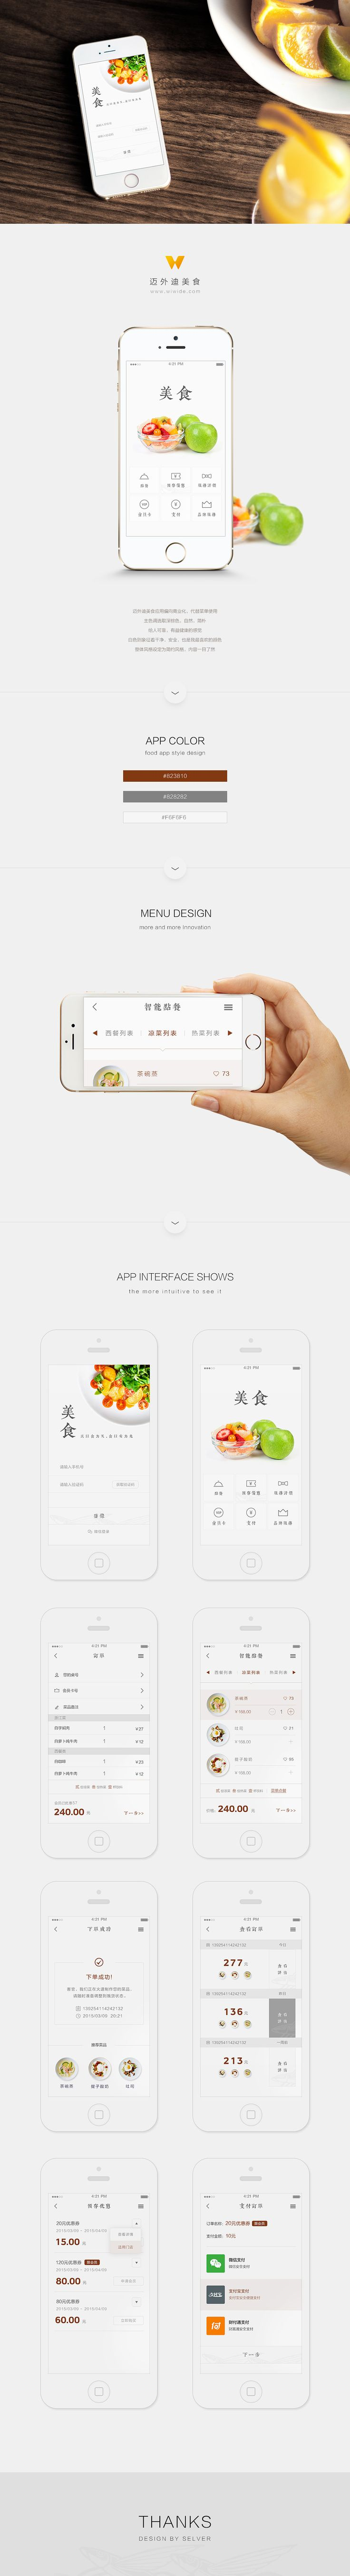 food - mobile web design Make some easy money with this FREE web app --> http://bitcoinfaucetbonanza.com/ <-- Get Rich!